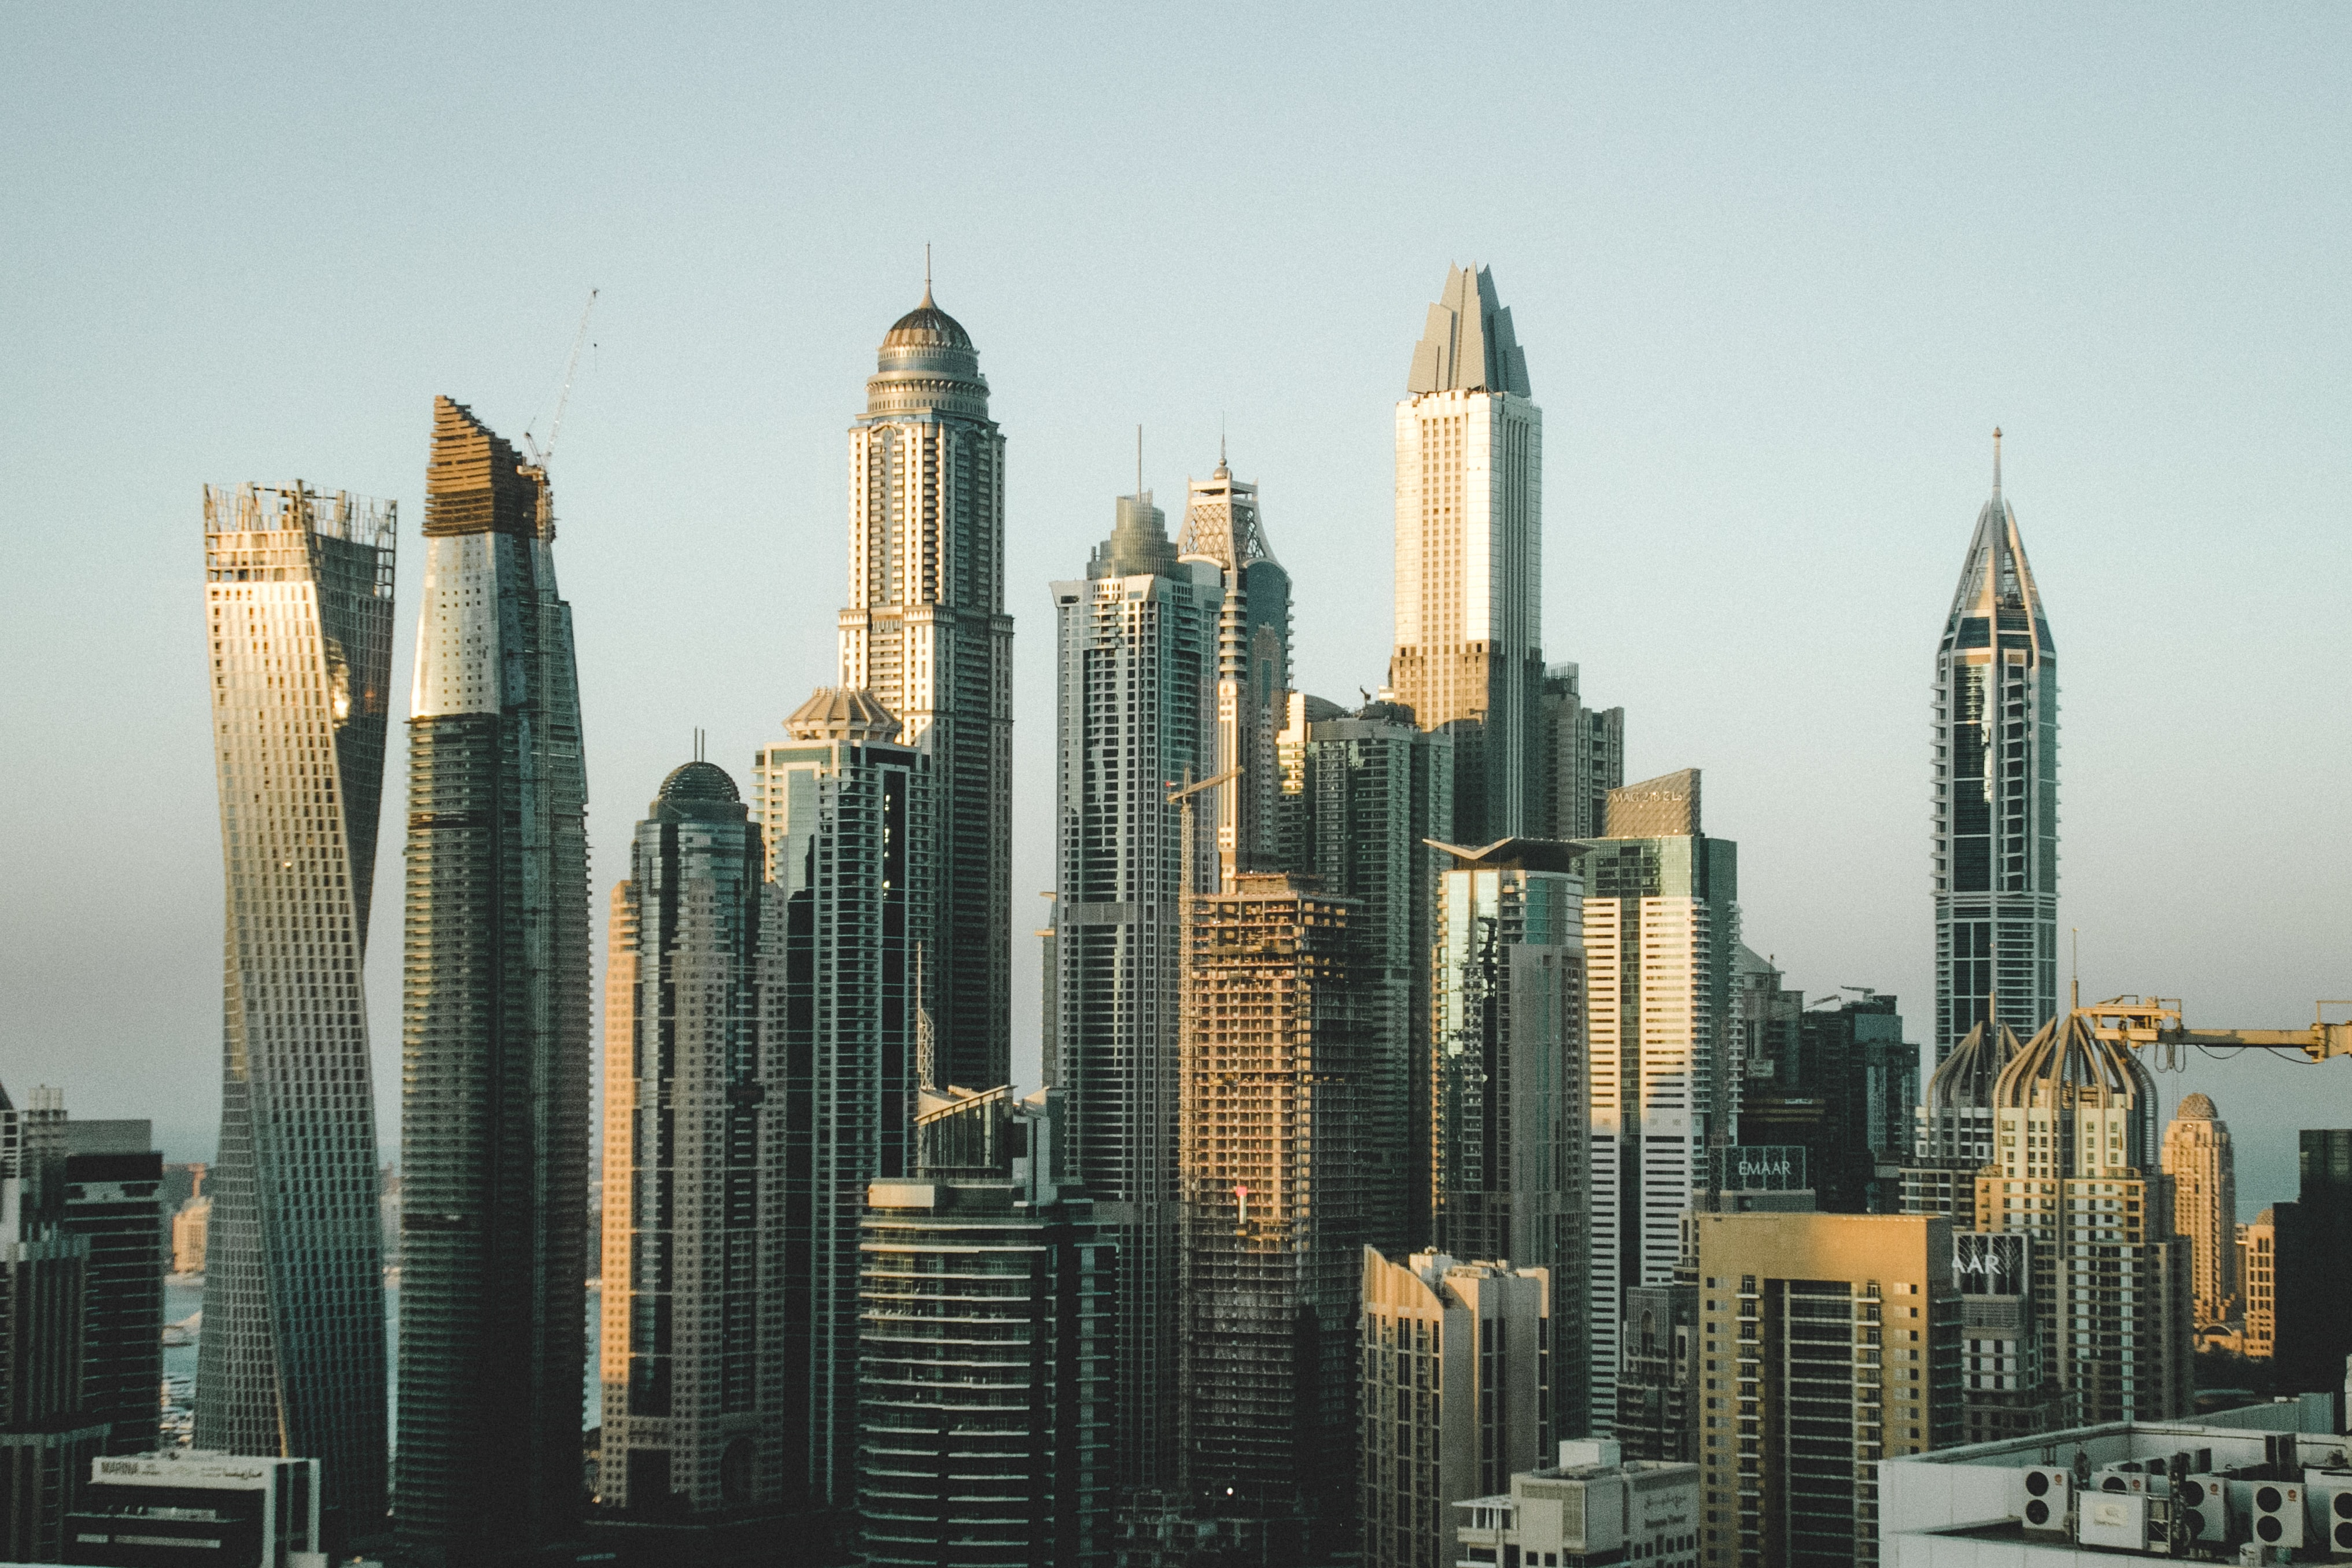 A cluster of tall skyscrapers in downtown Dubai